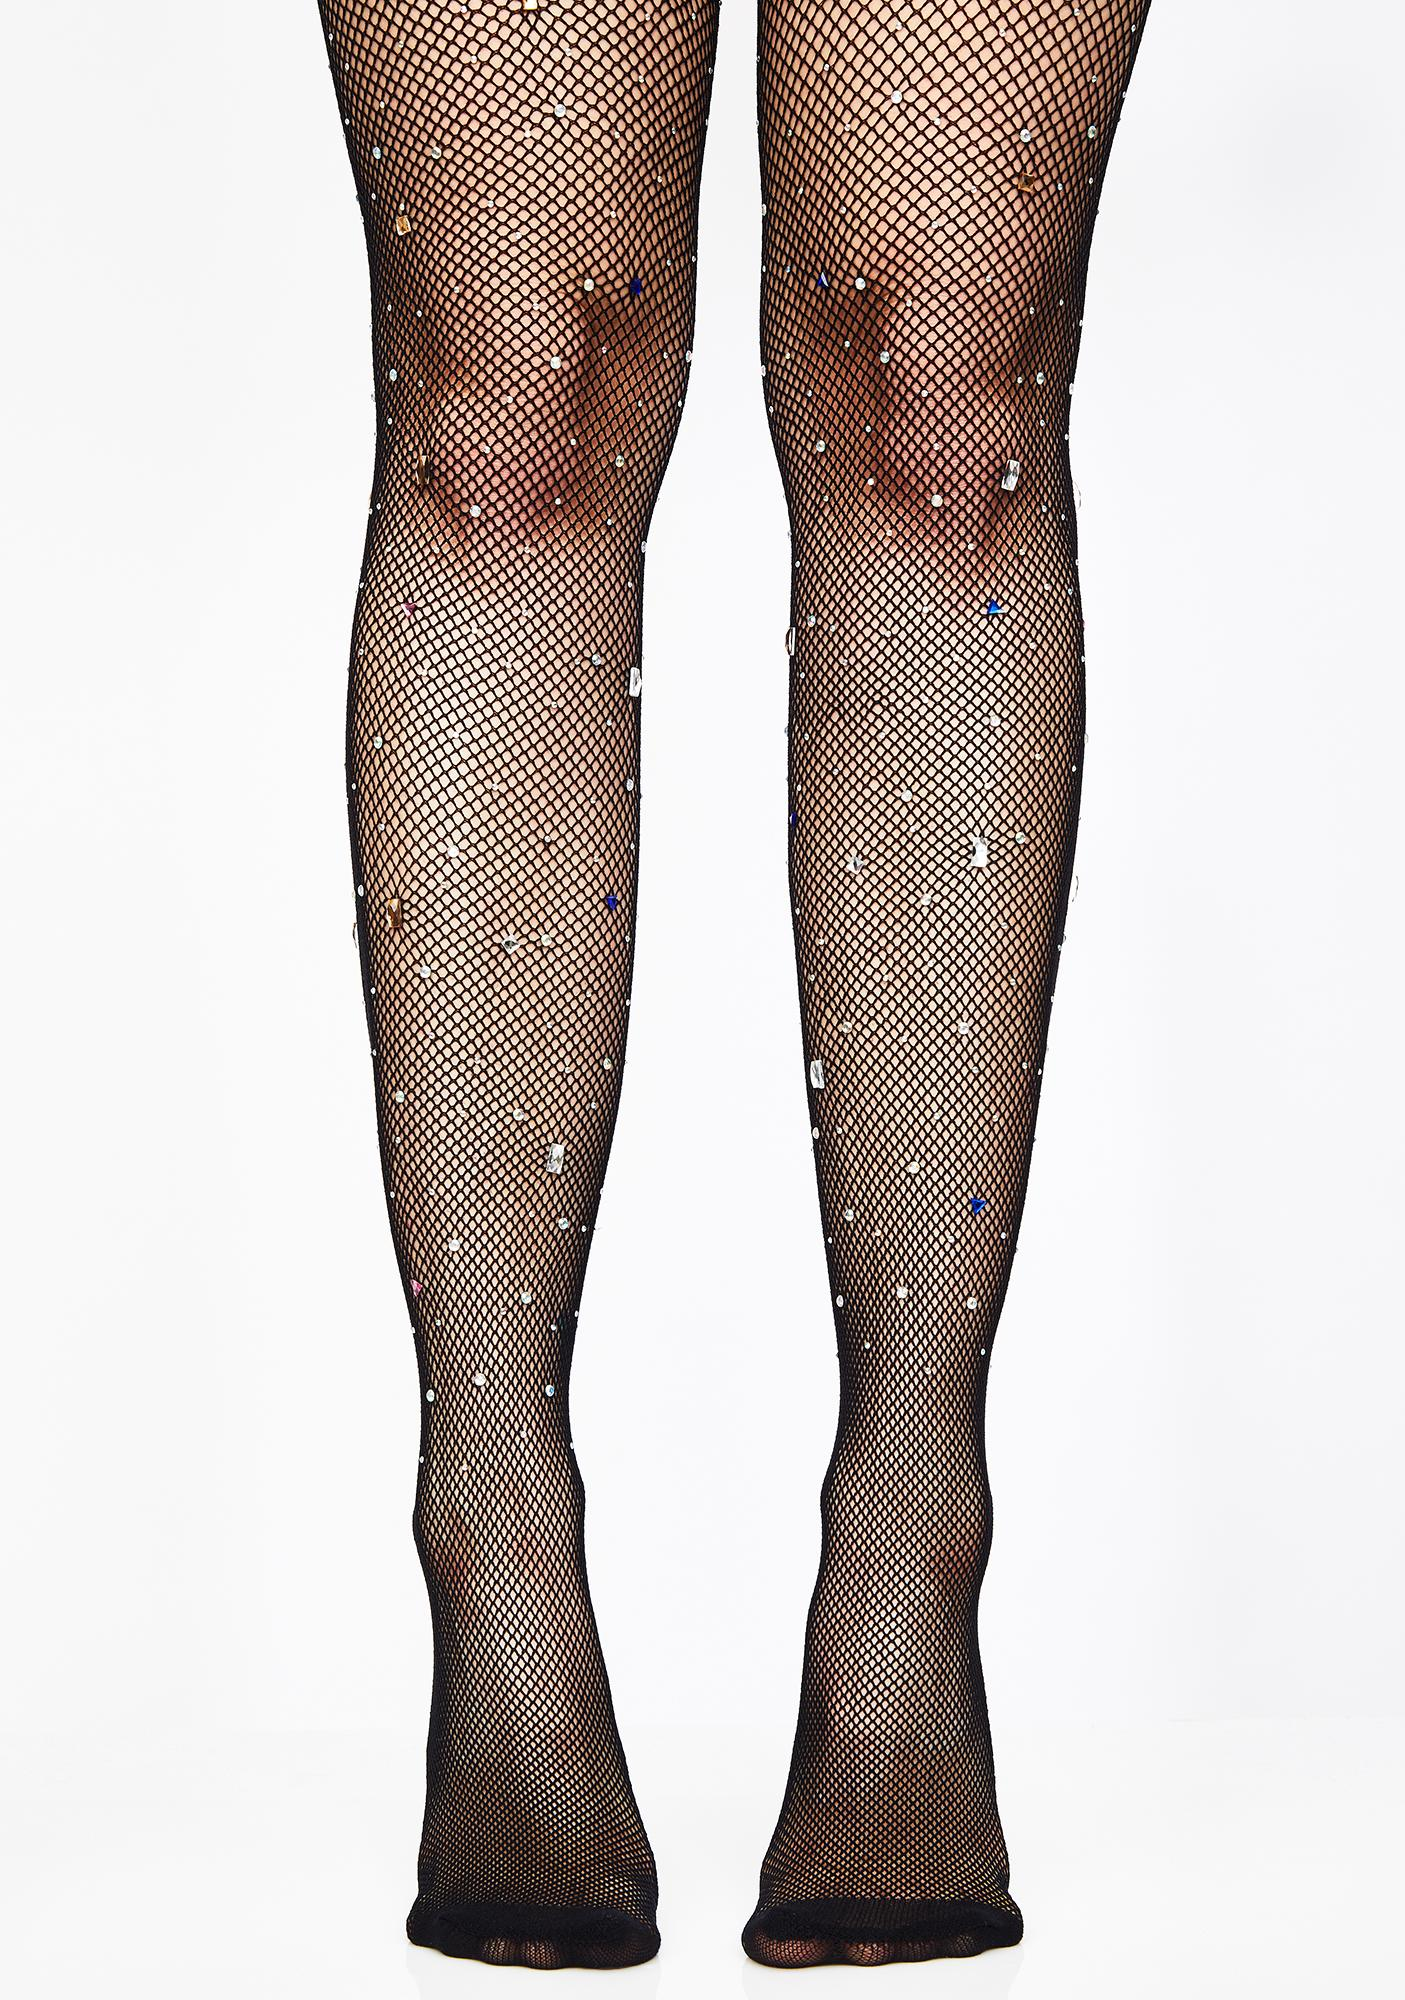 ee8d63c97fa14 Crystal Visionz Fishnet Tights · Crystal Visionz Fishnet Tights ...